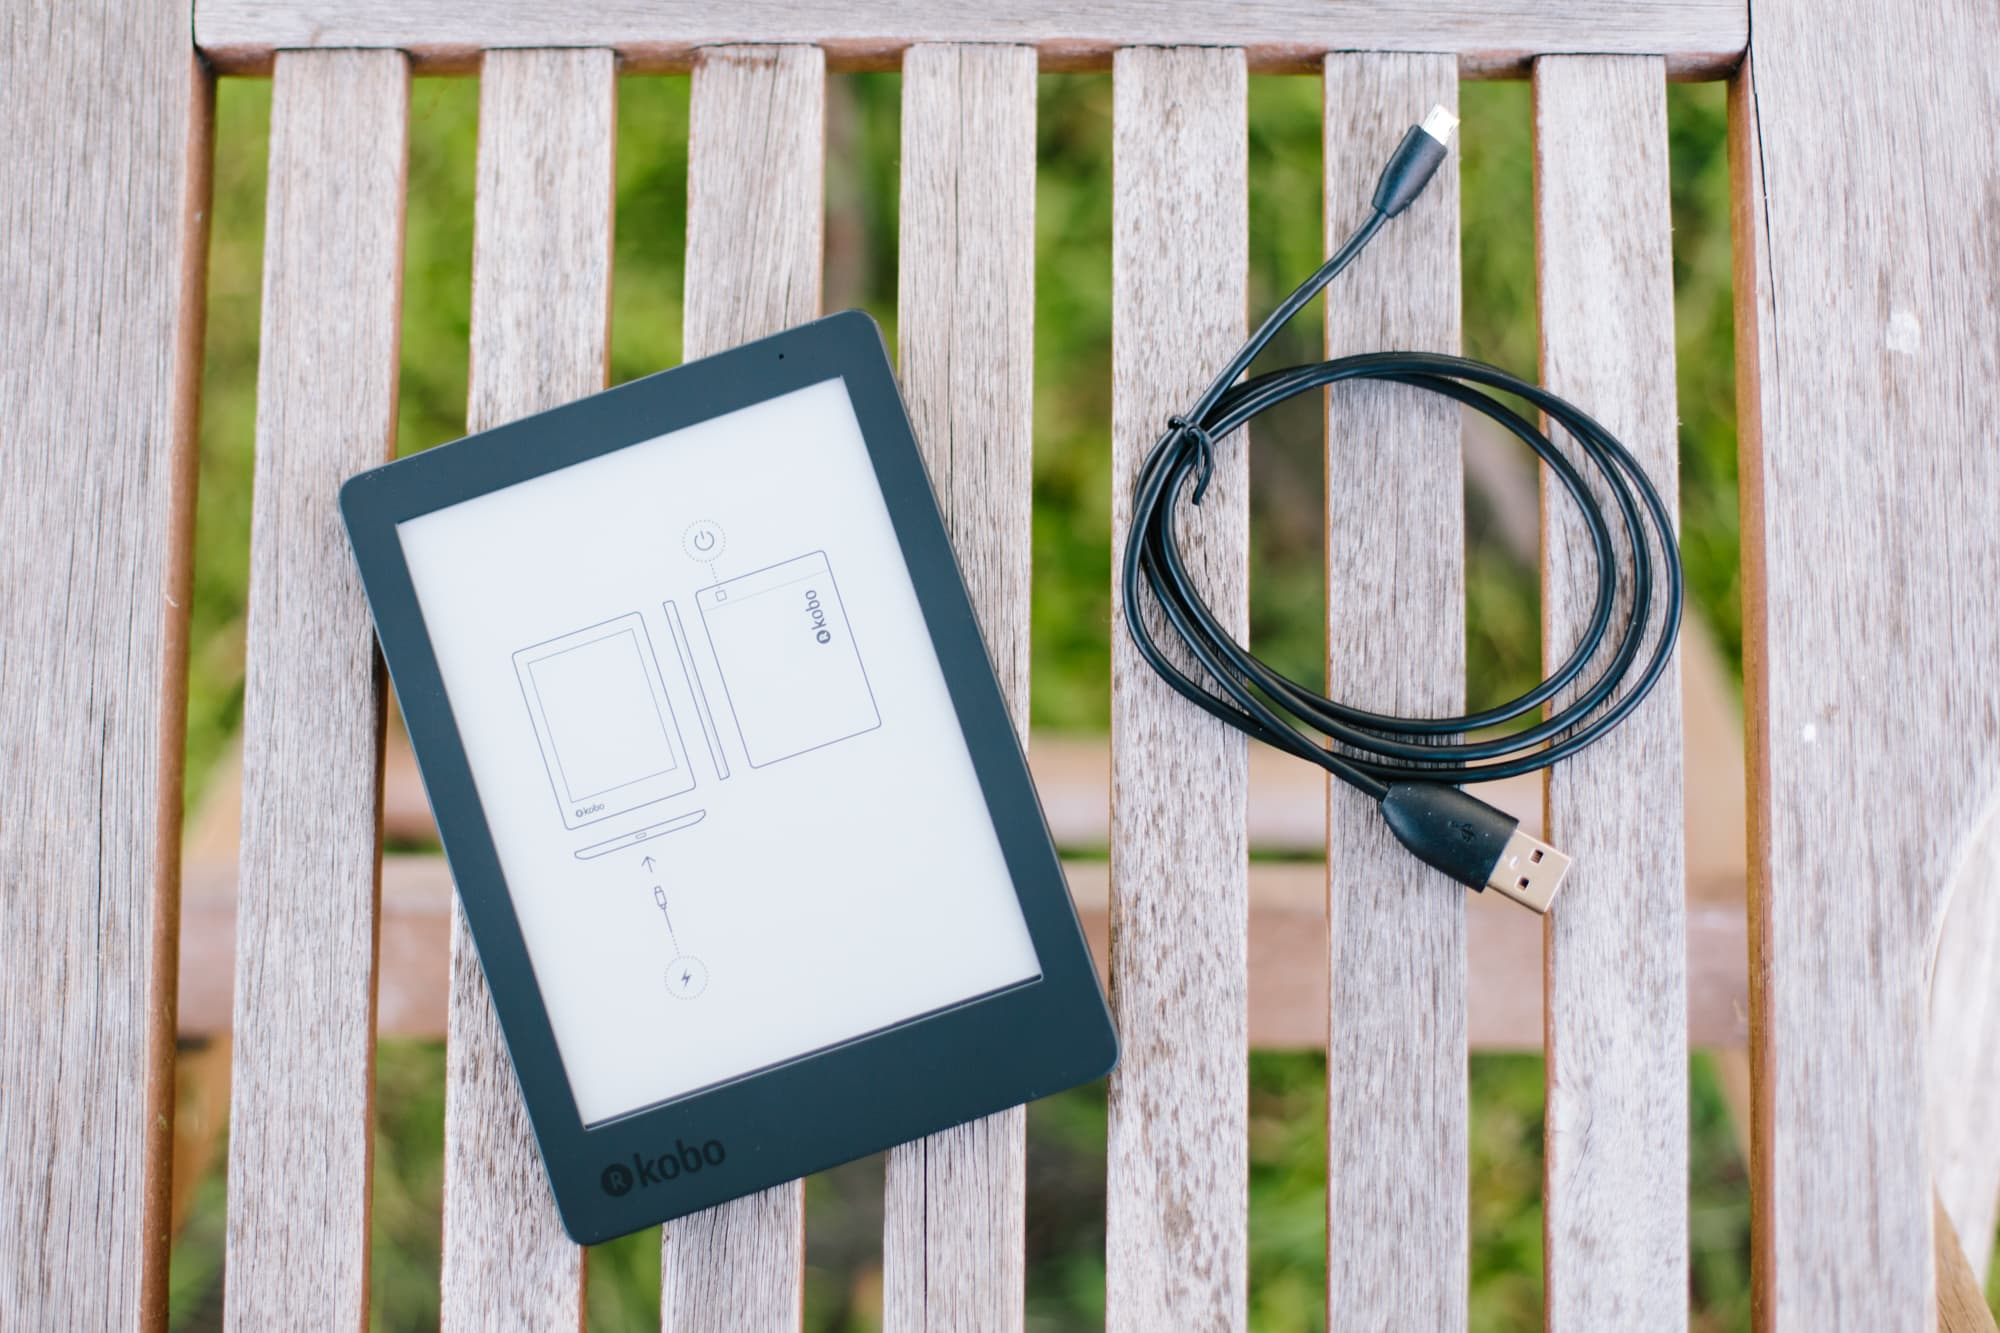 REVIEW: The Kobo Aura & Aura One Get Different Things Right